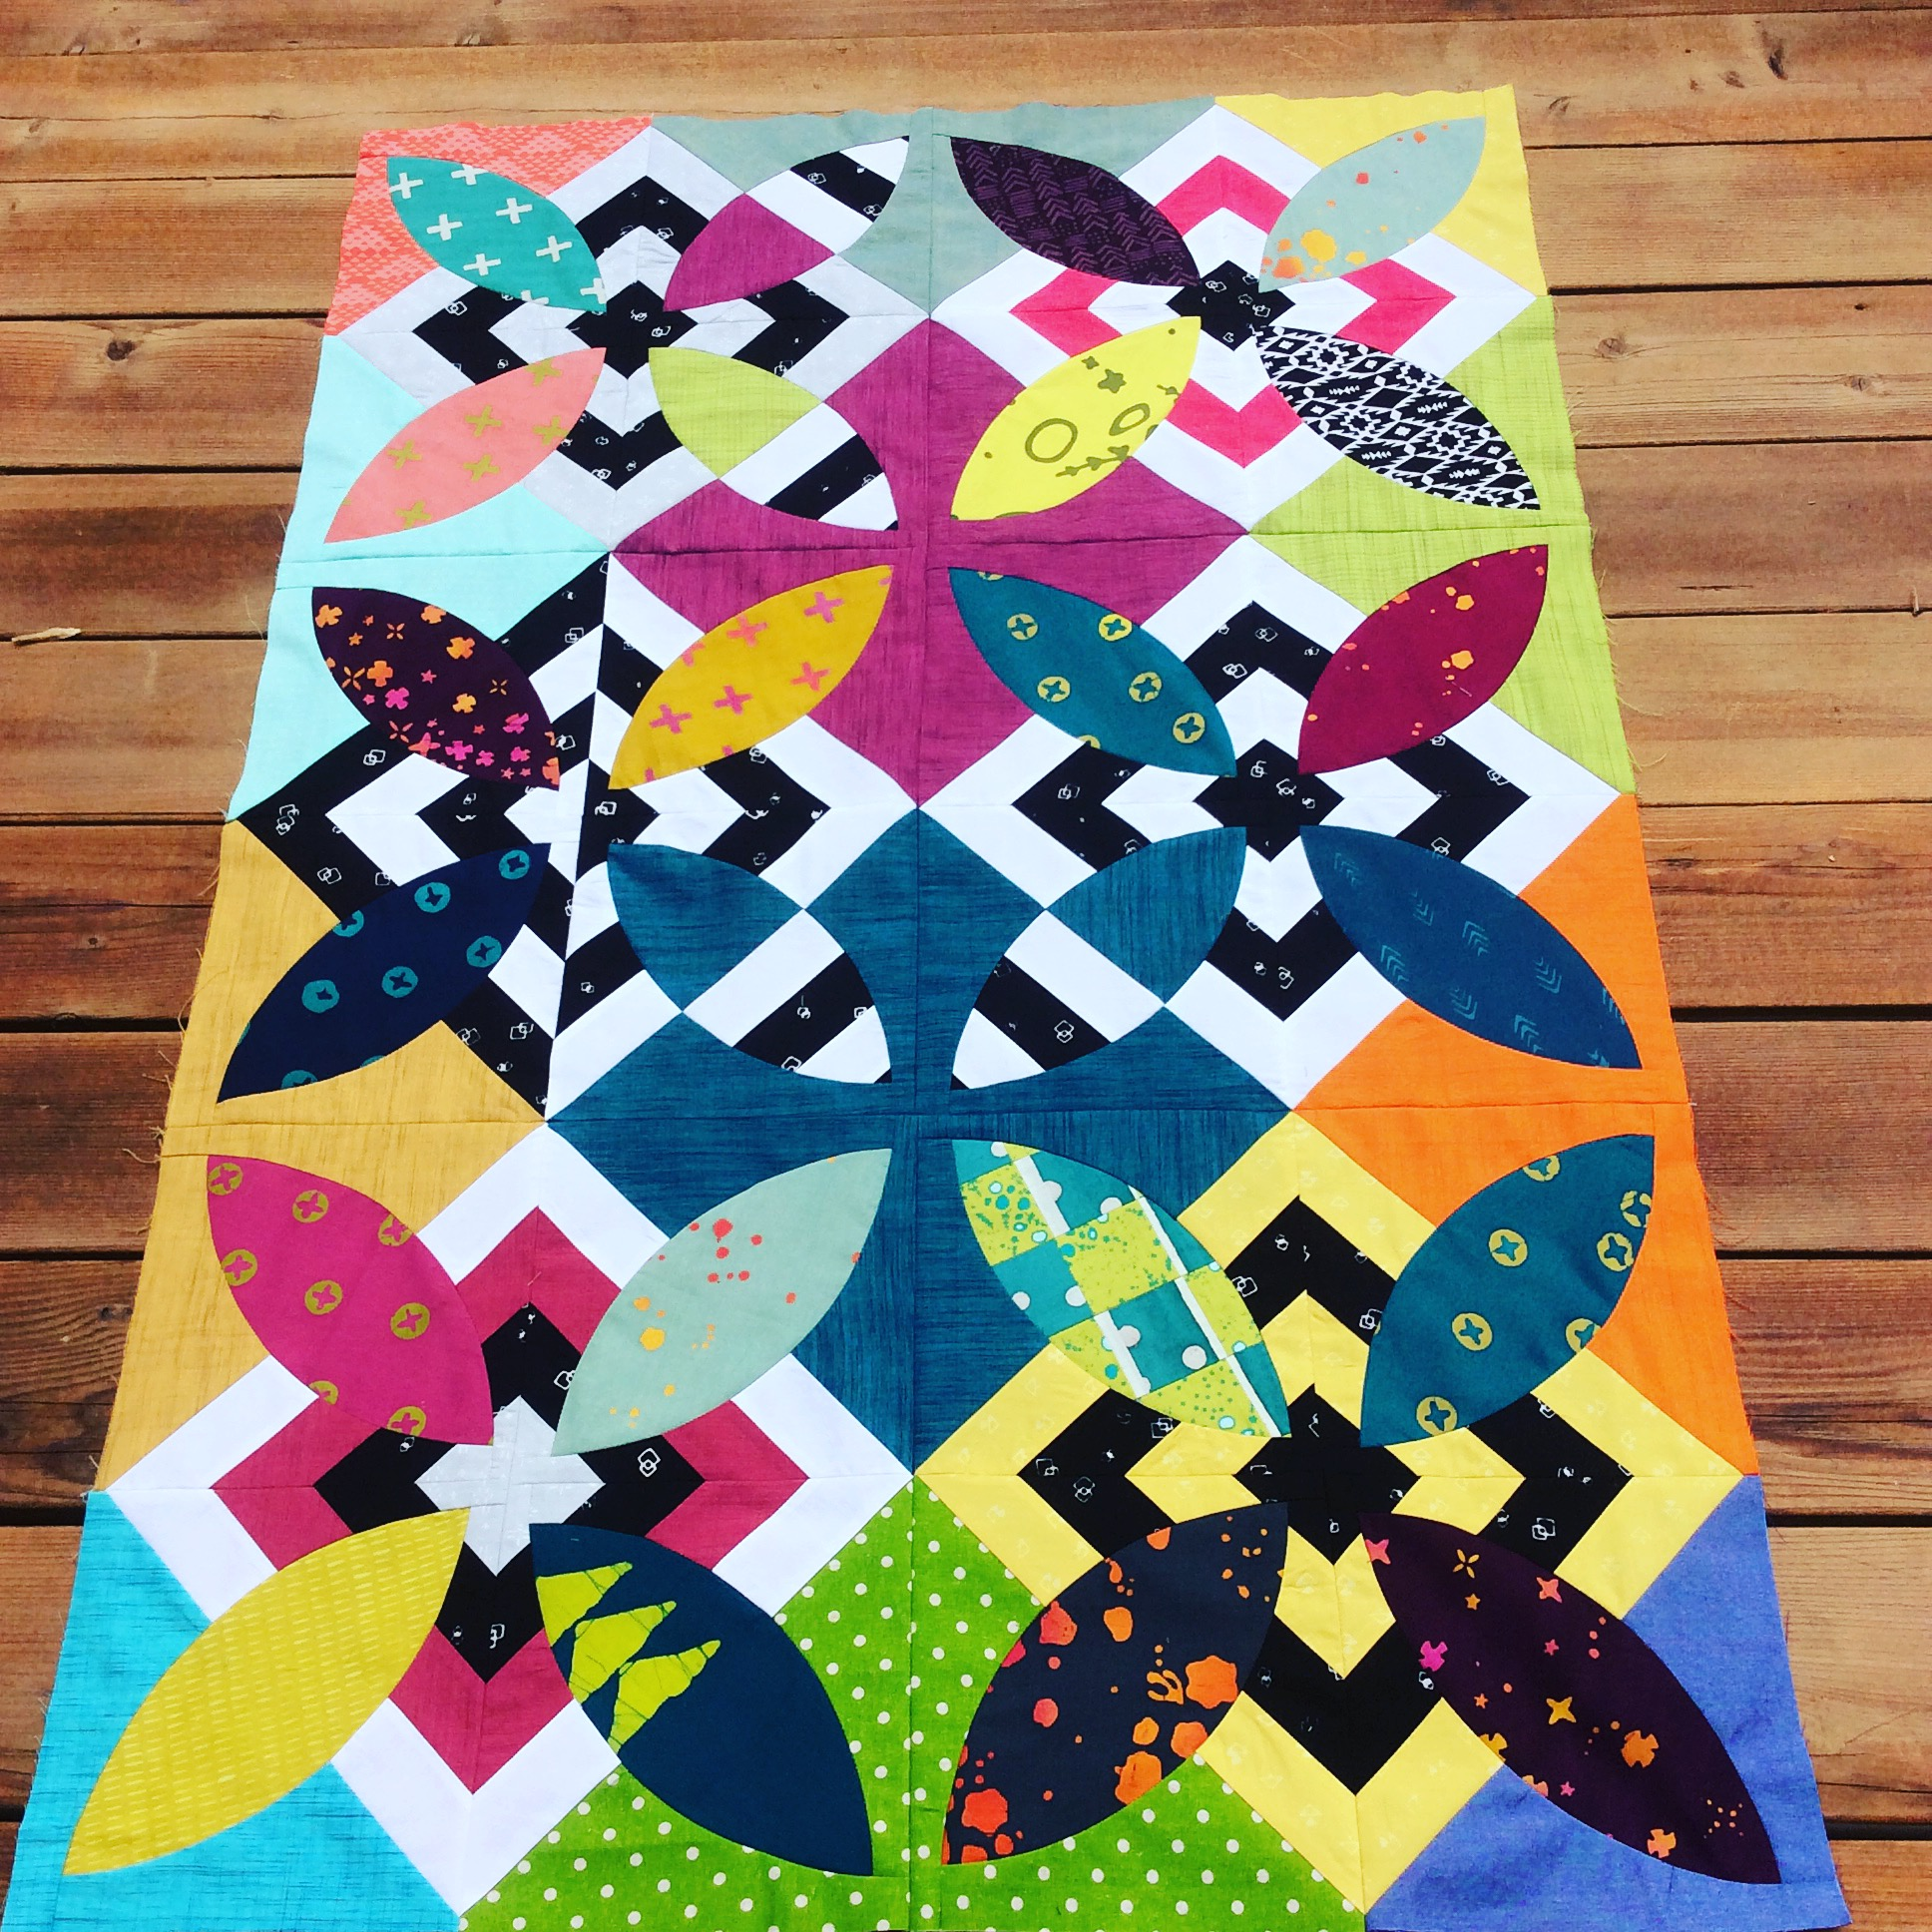 Summer Bloom quilt in progress by Sharon McConnell